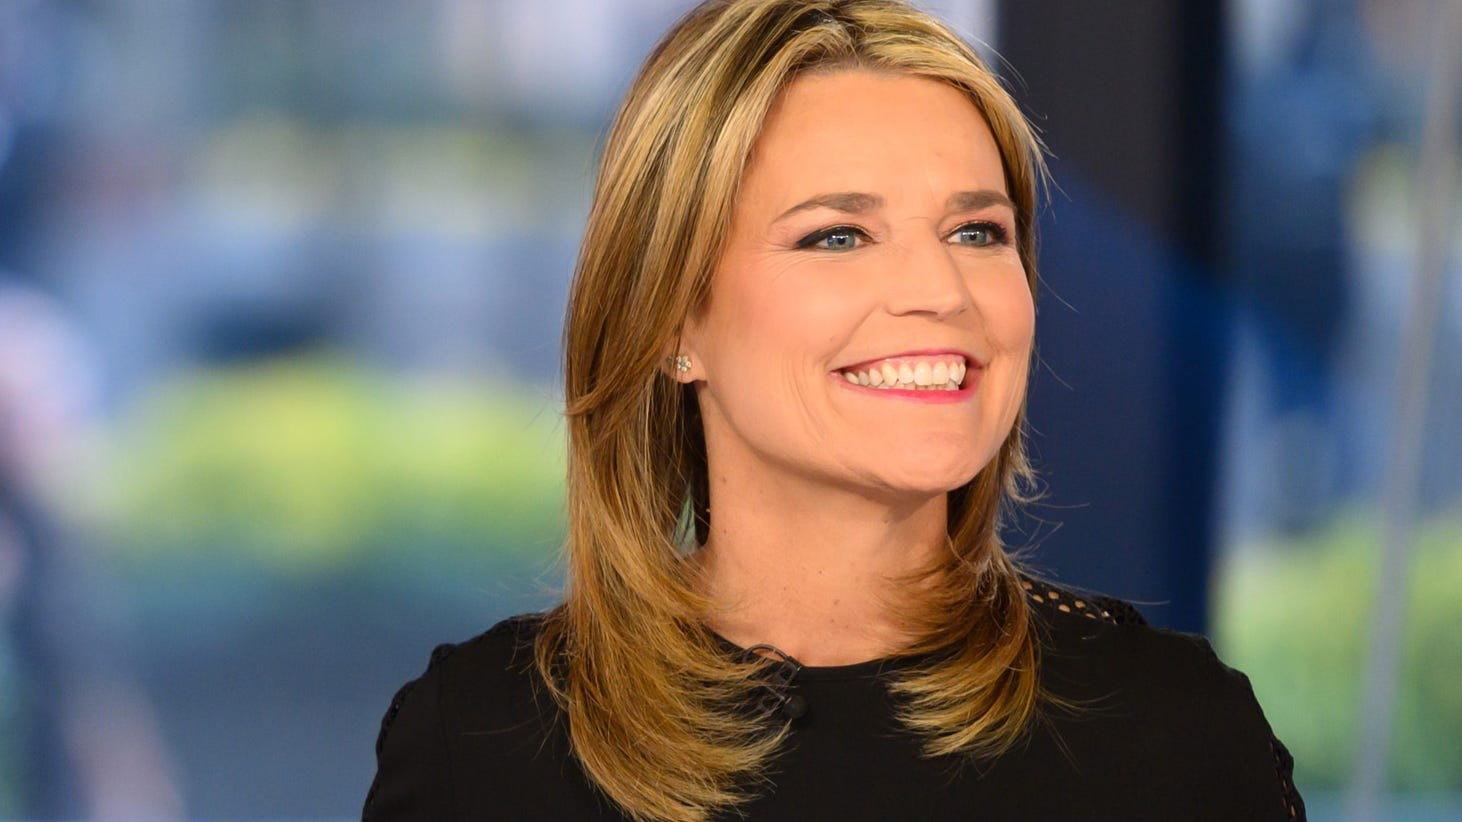 Savannah Guthrie Gets Mixed Reviews For Sarah Huckabee Sanders Interview